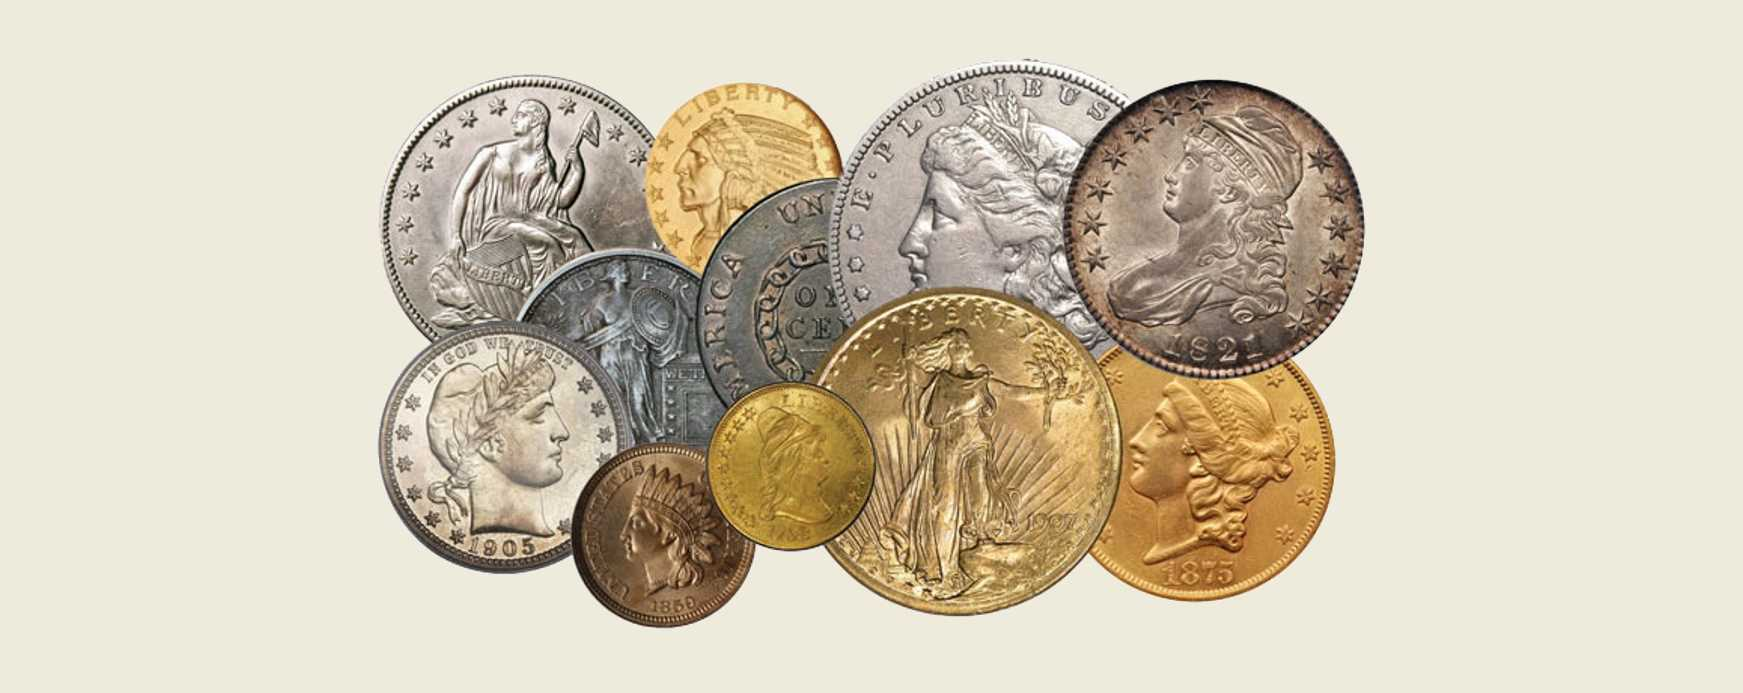 ESTATE OLD VINTAGE US COINS,GOLD,SILVER,.999 BULLION,PLATINUM,CURRENCY,STAMPS